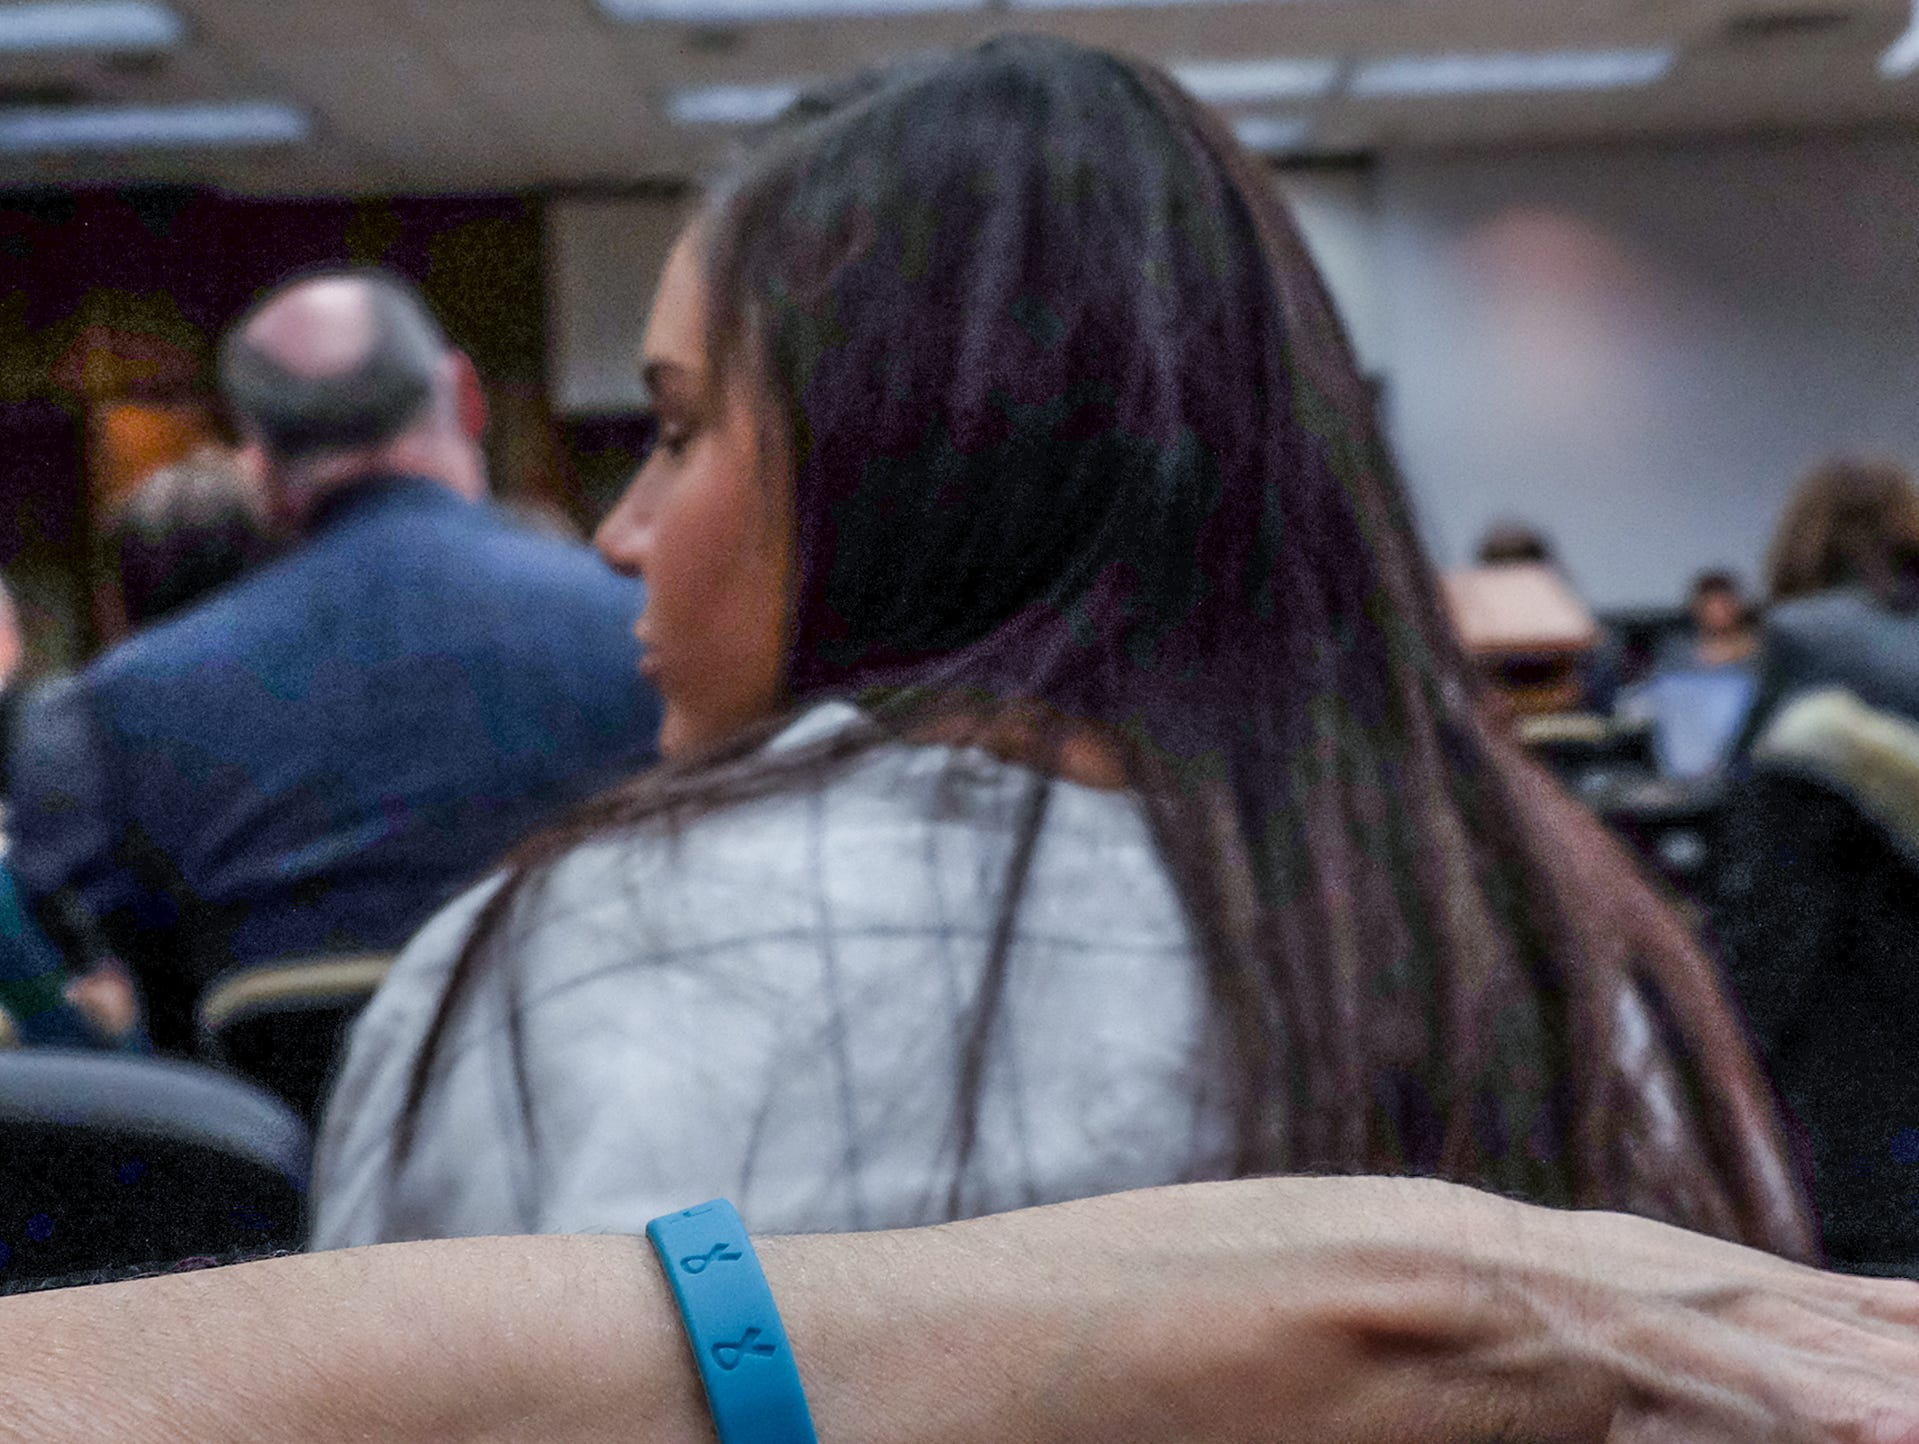 Lisa Lorincz wears a teal colored survivors bracelet  to support her daughter Kaylee who is a survivor of Larry Nassar at a MSU Board of Trustees meeting Friday, Dec. 14, 2018.